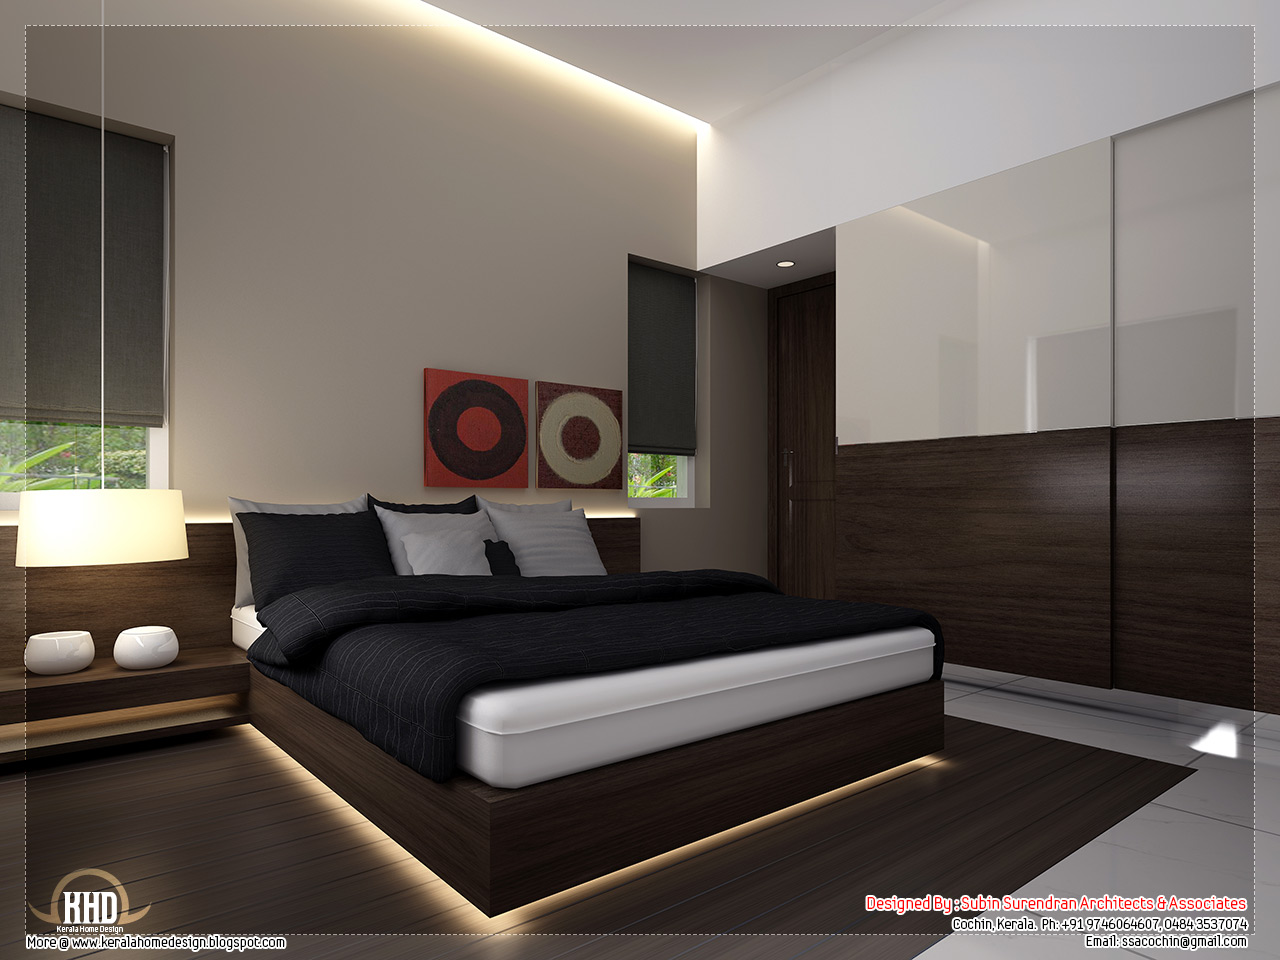 Beautiful home interior designs kerala homes for Bedroom interior design images